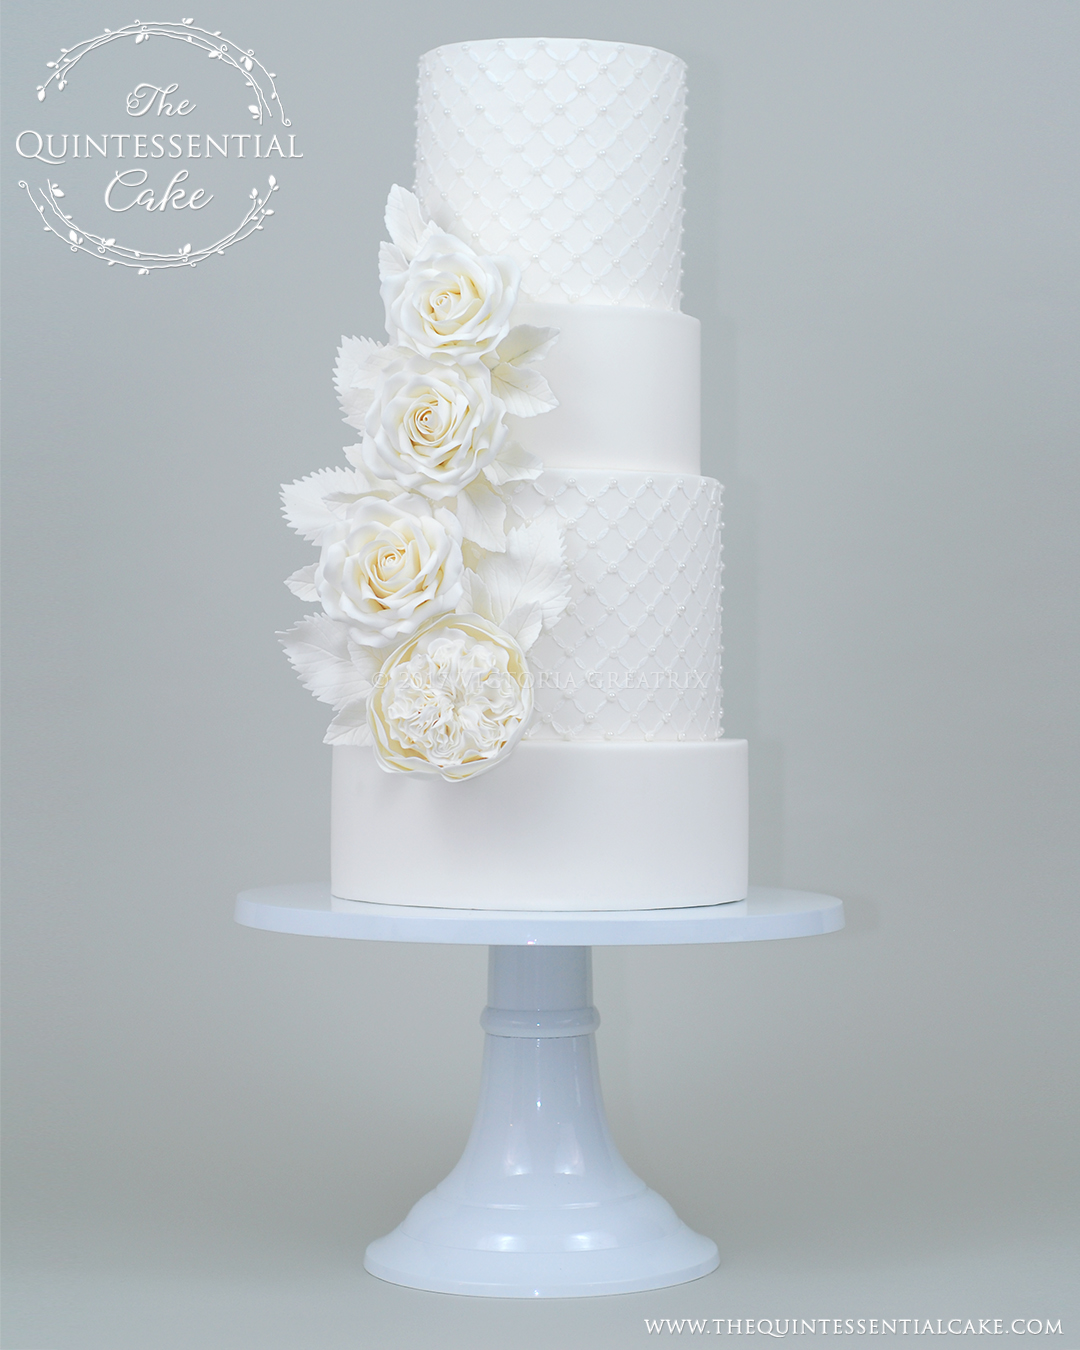 All White Wedding Cake with Sugar Roses and Pearls | The Quintessential Cake | Chicago | Luxury Wedding Cakes